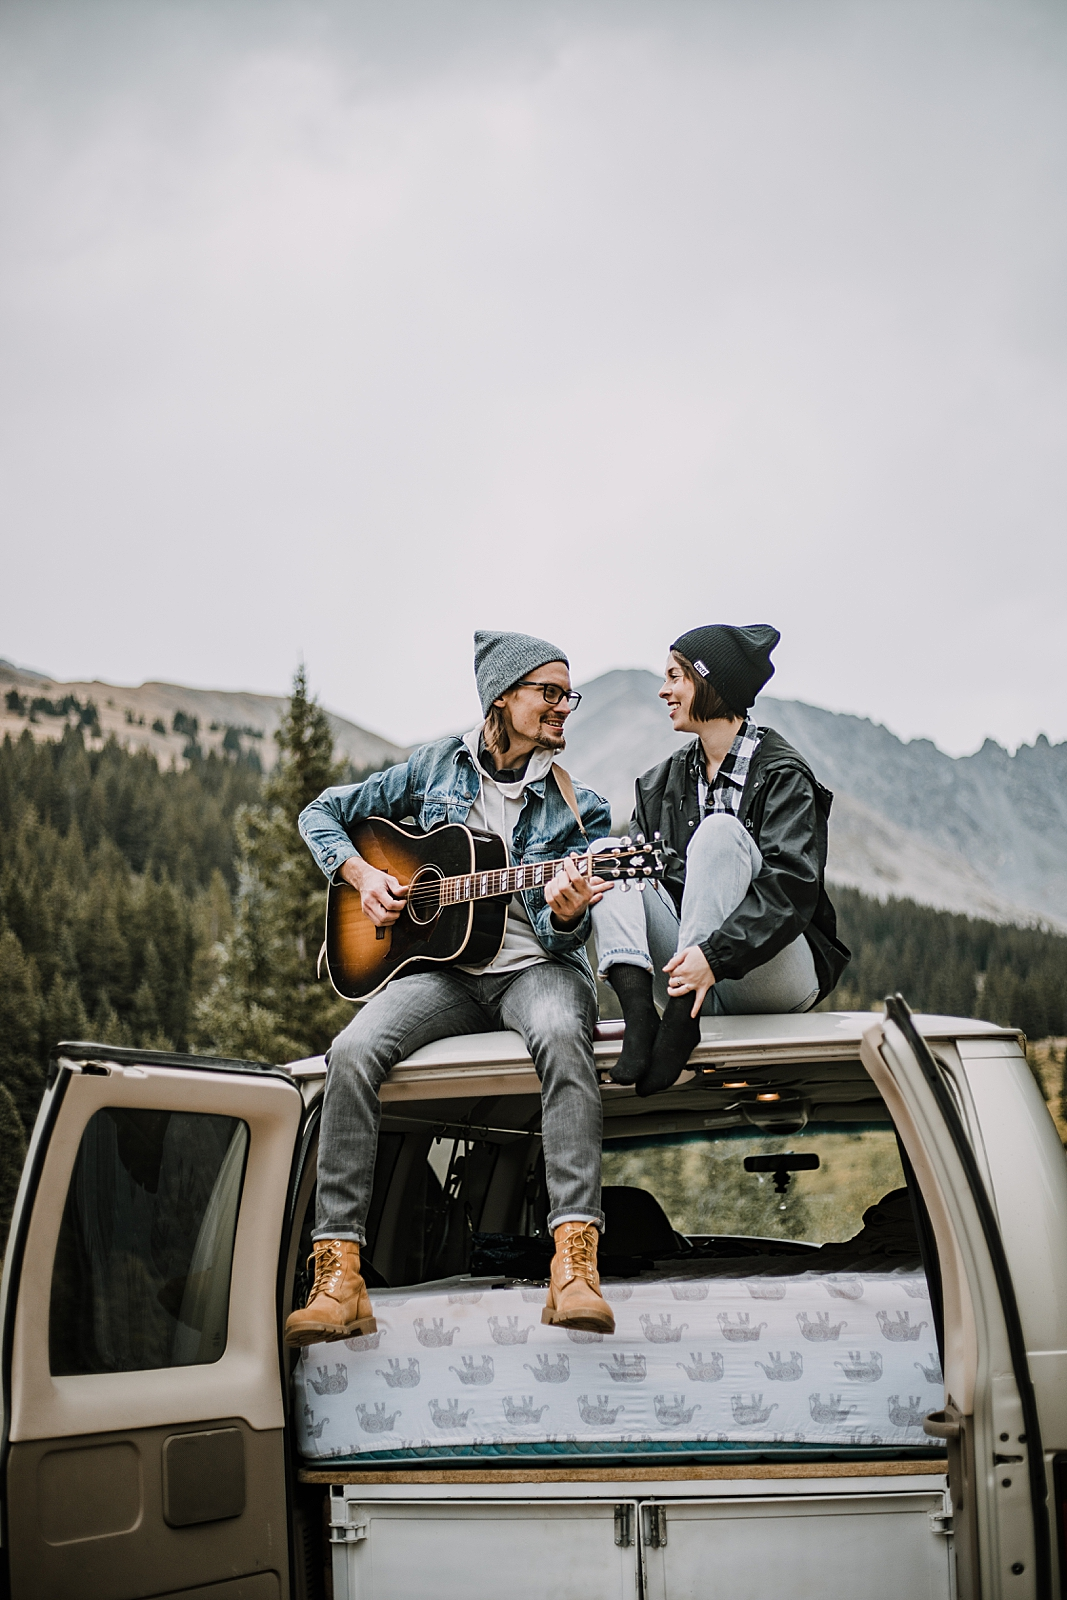 couple singing, couple living out of a van, van life with dogs, hiking mayflower gulch, mayflower gulch elopement, mayflower gulch wedding, colorado 14er, colorado fourteener, leadville elopement